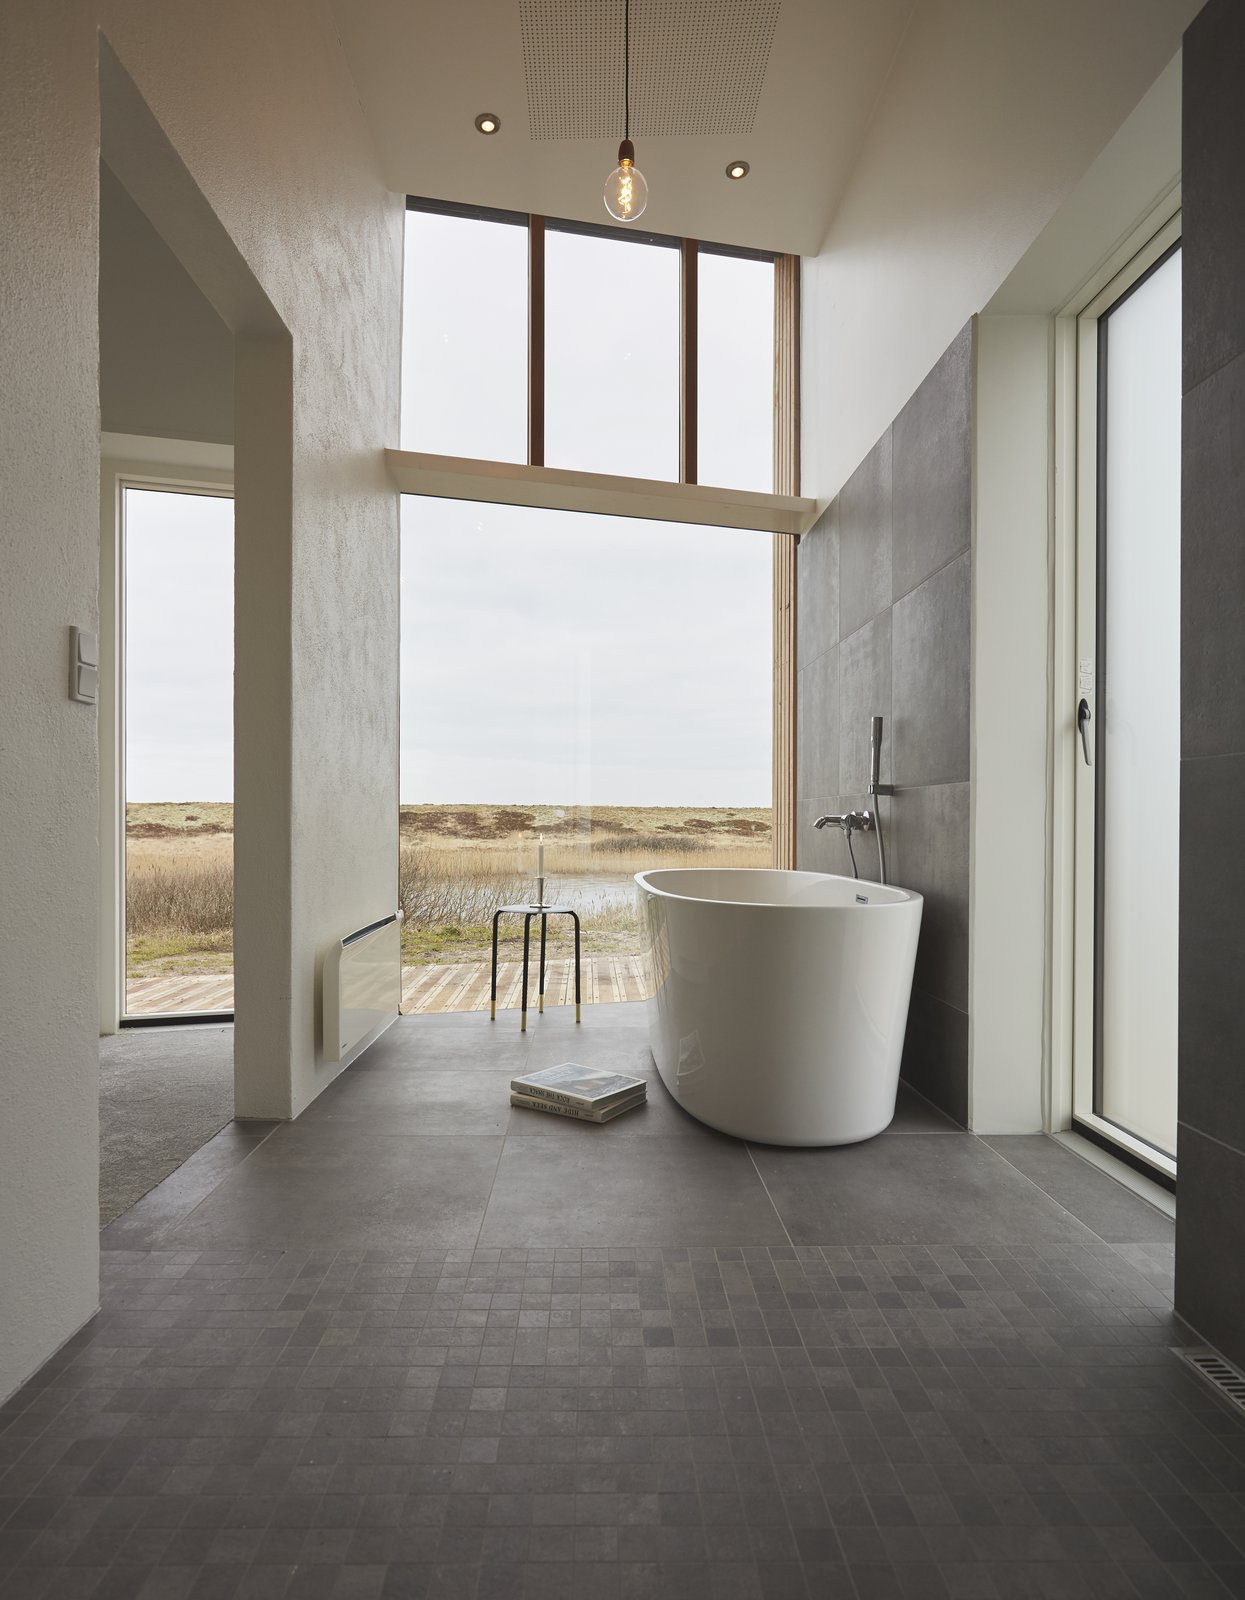 Bath Room, Slate Floor, Freestanding Tub, Pendant Lighting, Recessed Lighting, and Soaking Tub  Photo 4 of 40 in 40 Modern Bathtubs That Soak In the View from Rent This Danish A-Frame For Your Next Nordic Escape